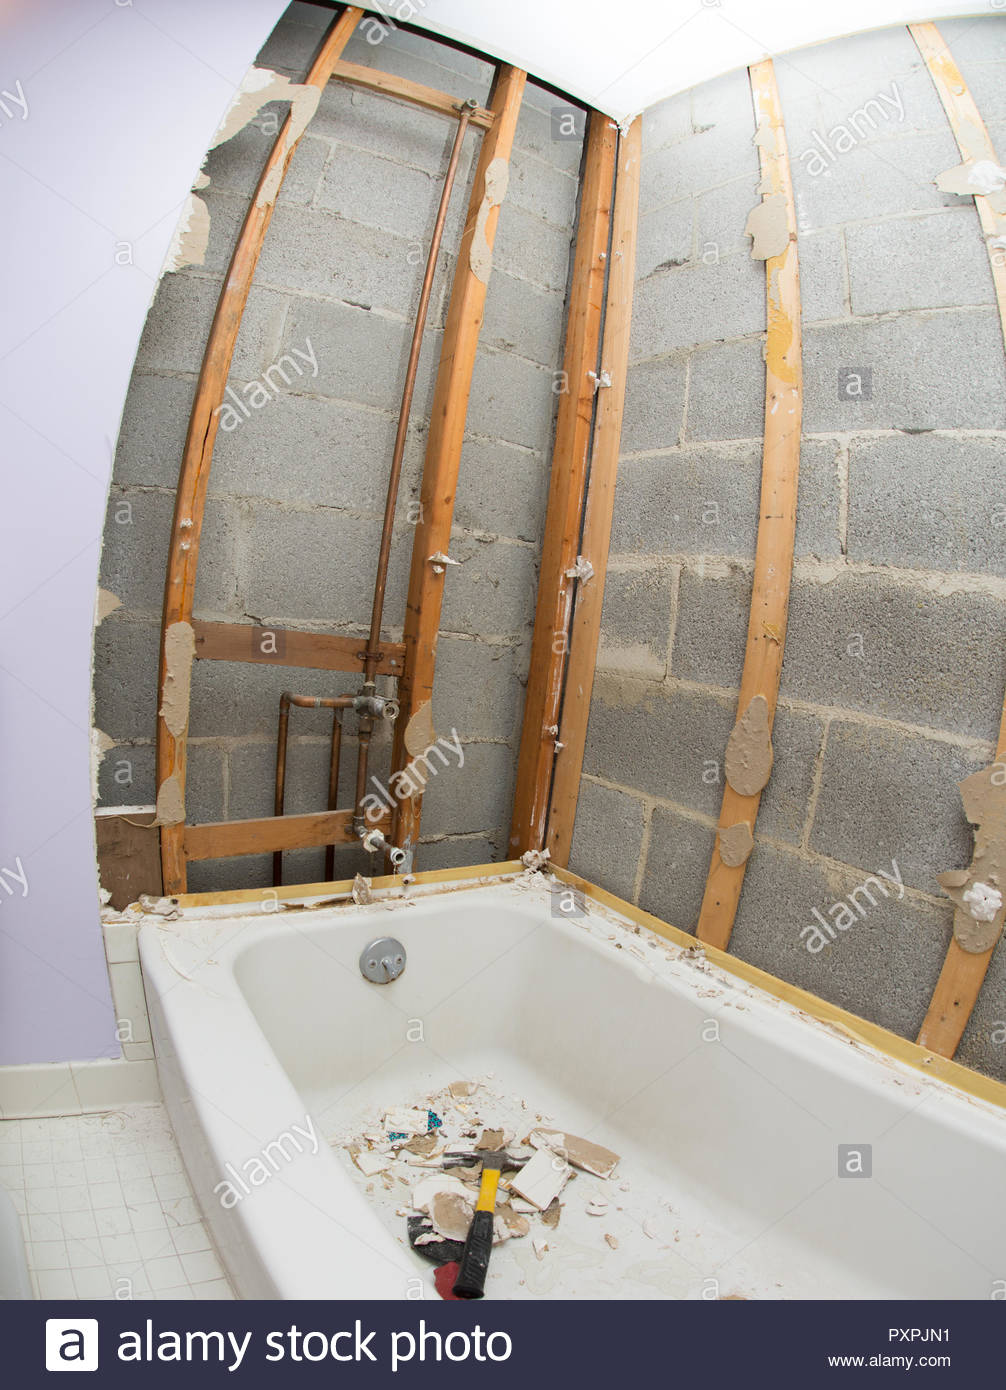 Location shot of a bathtub and shower being demolished - Stock Image